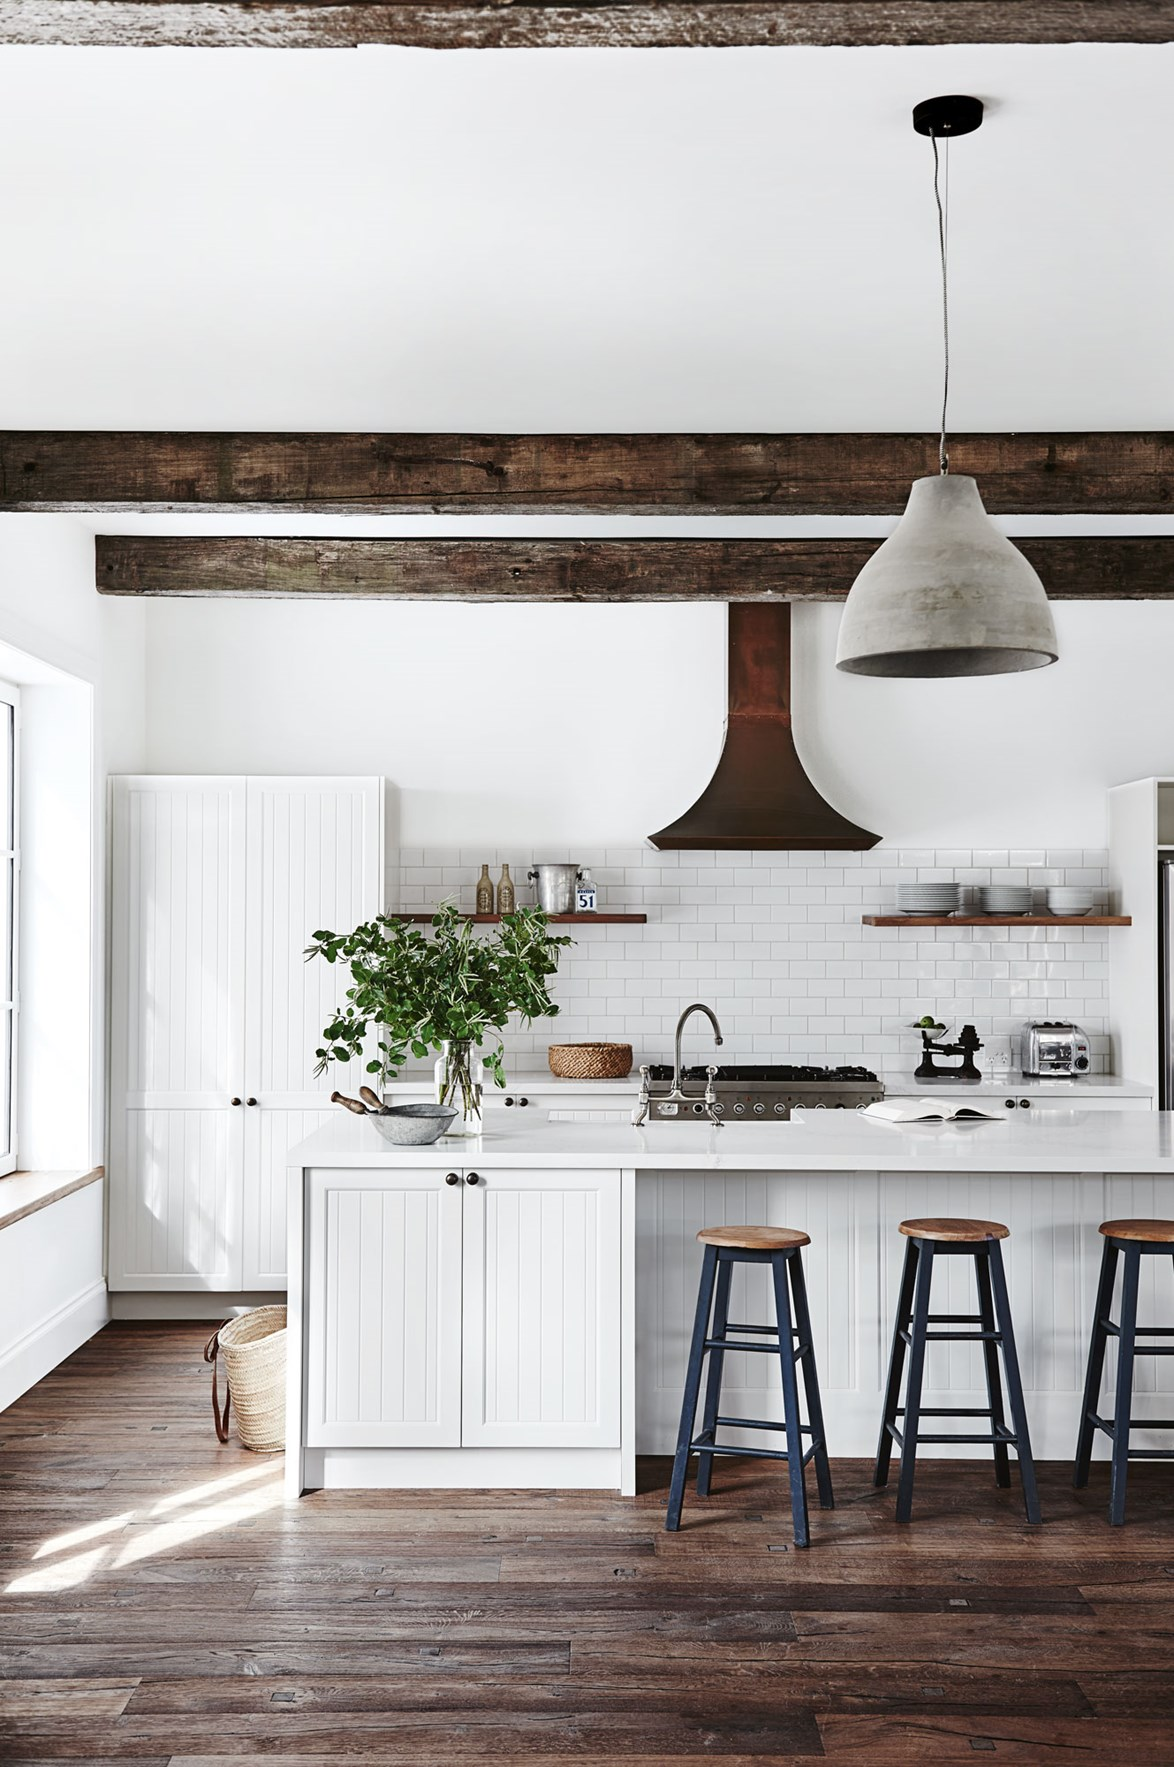 """If you like a clean, uncluttered aesthetic but still desire a kitchen with impact, channel the grandeur of French provincial style with your accessories. At [The French House in Trentham](https://www.homestolove.com.au/french-provincial-farmhouse-trentham-12156 